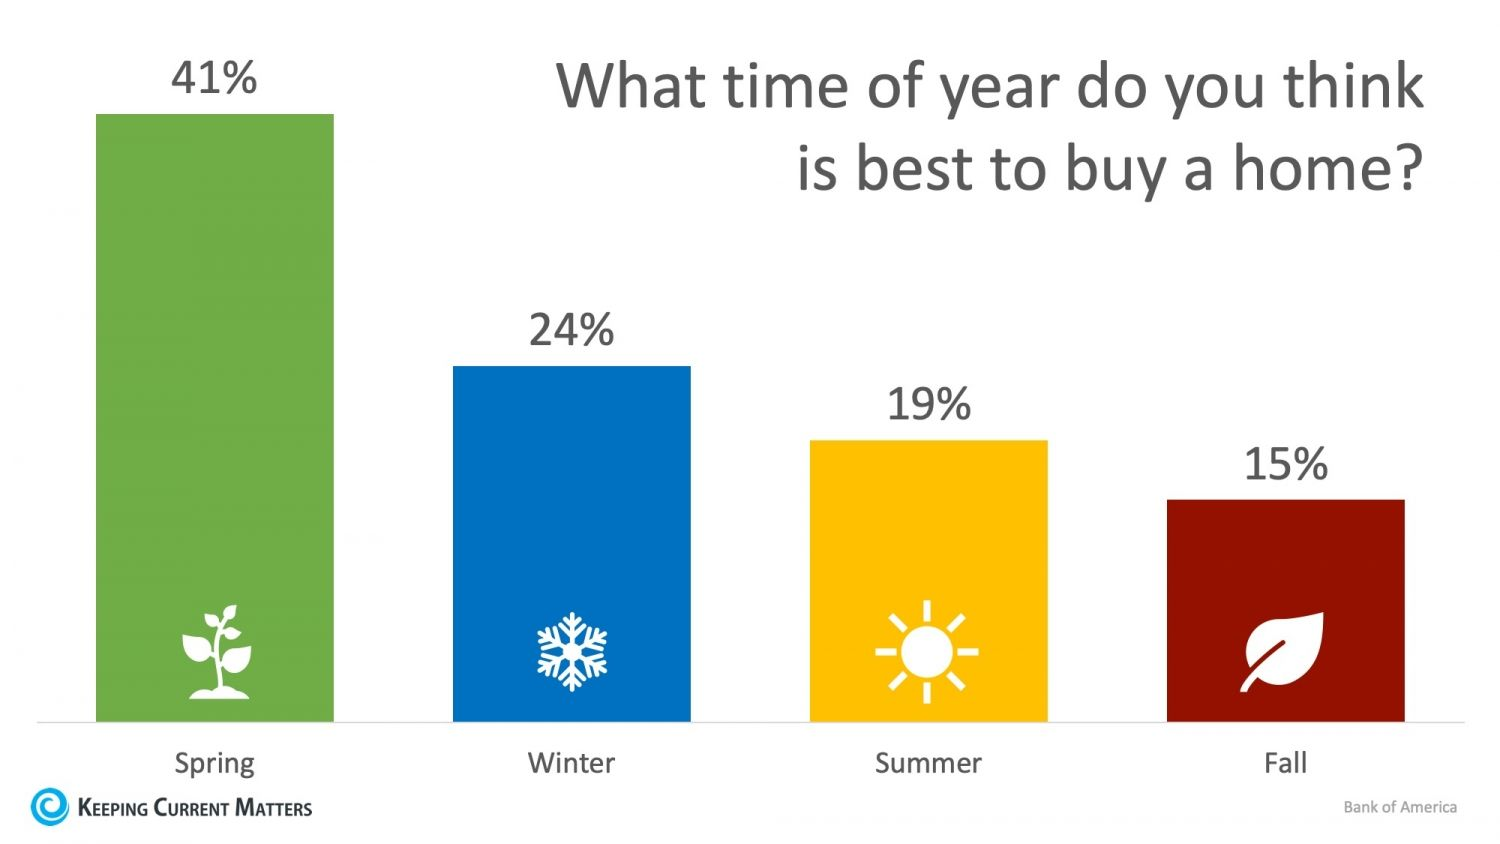 24 Of Renters Believe Winter Is The Best Time To Buy A Home